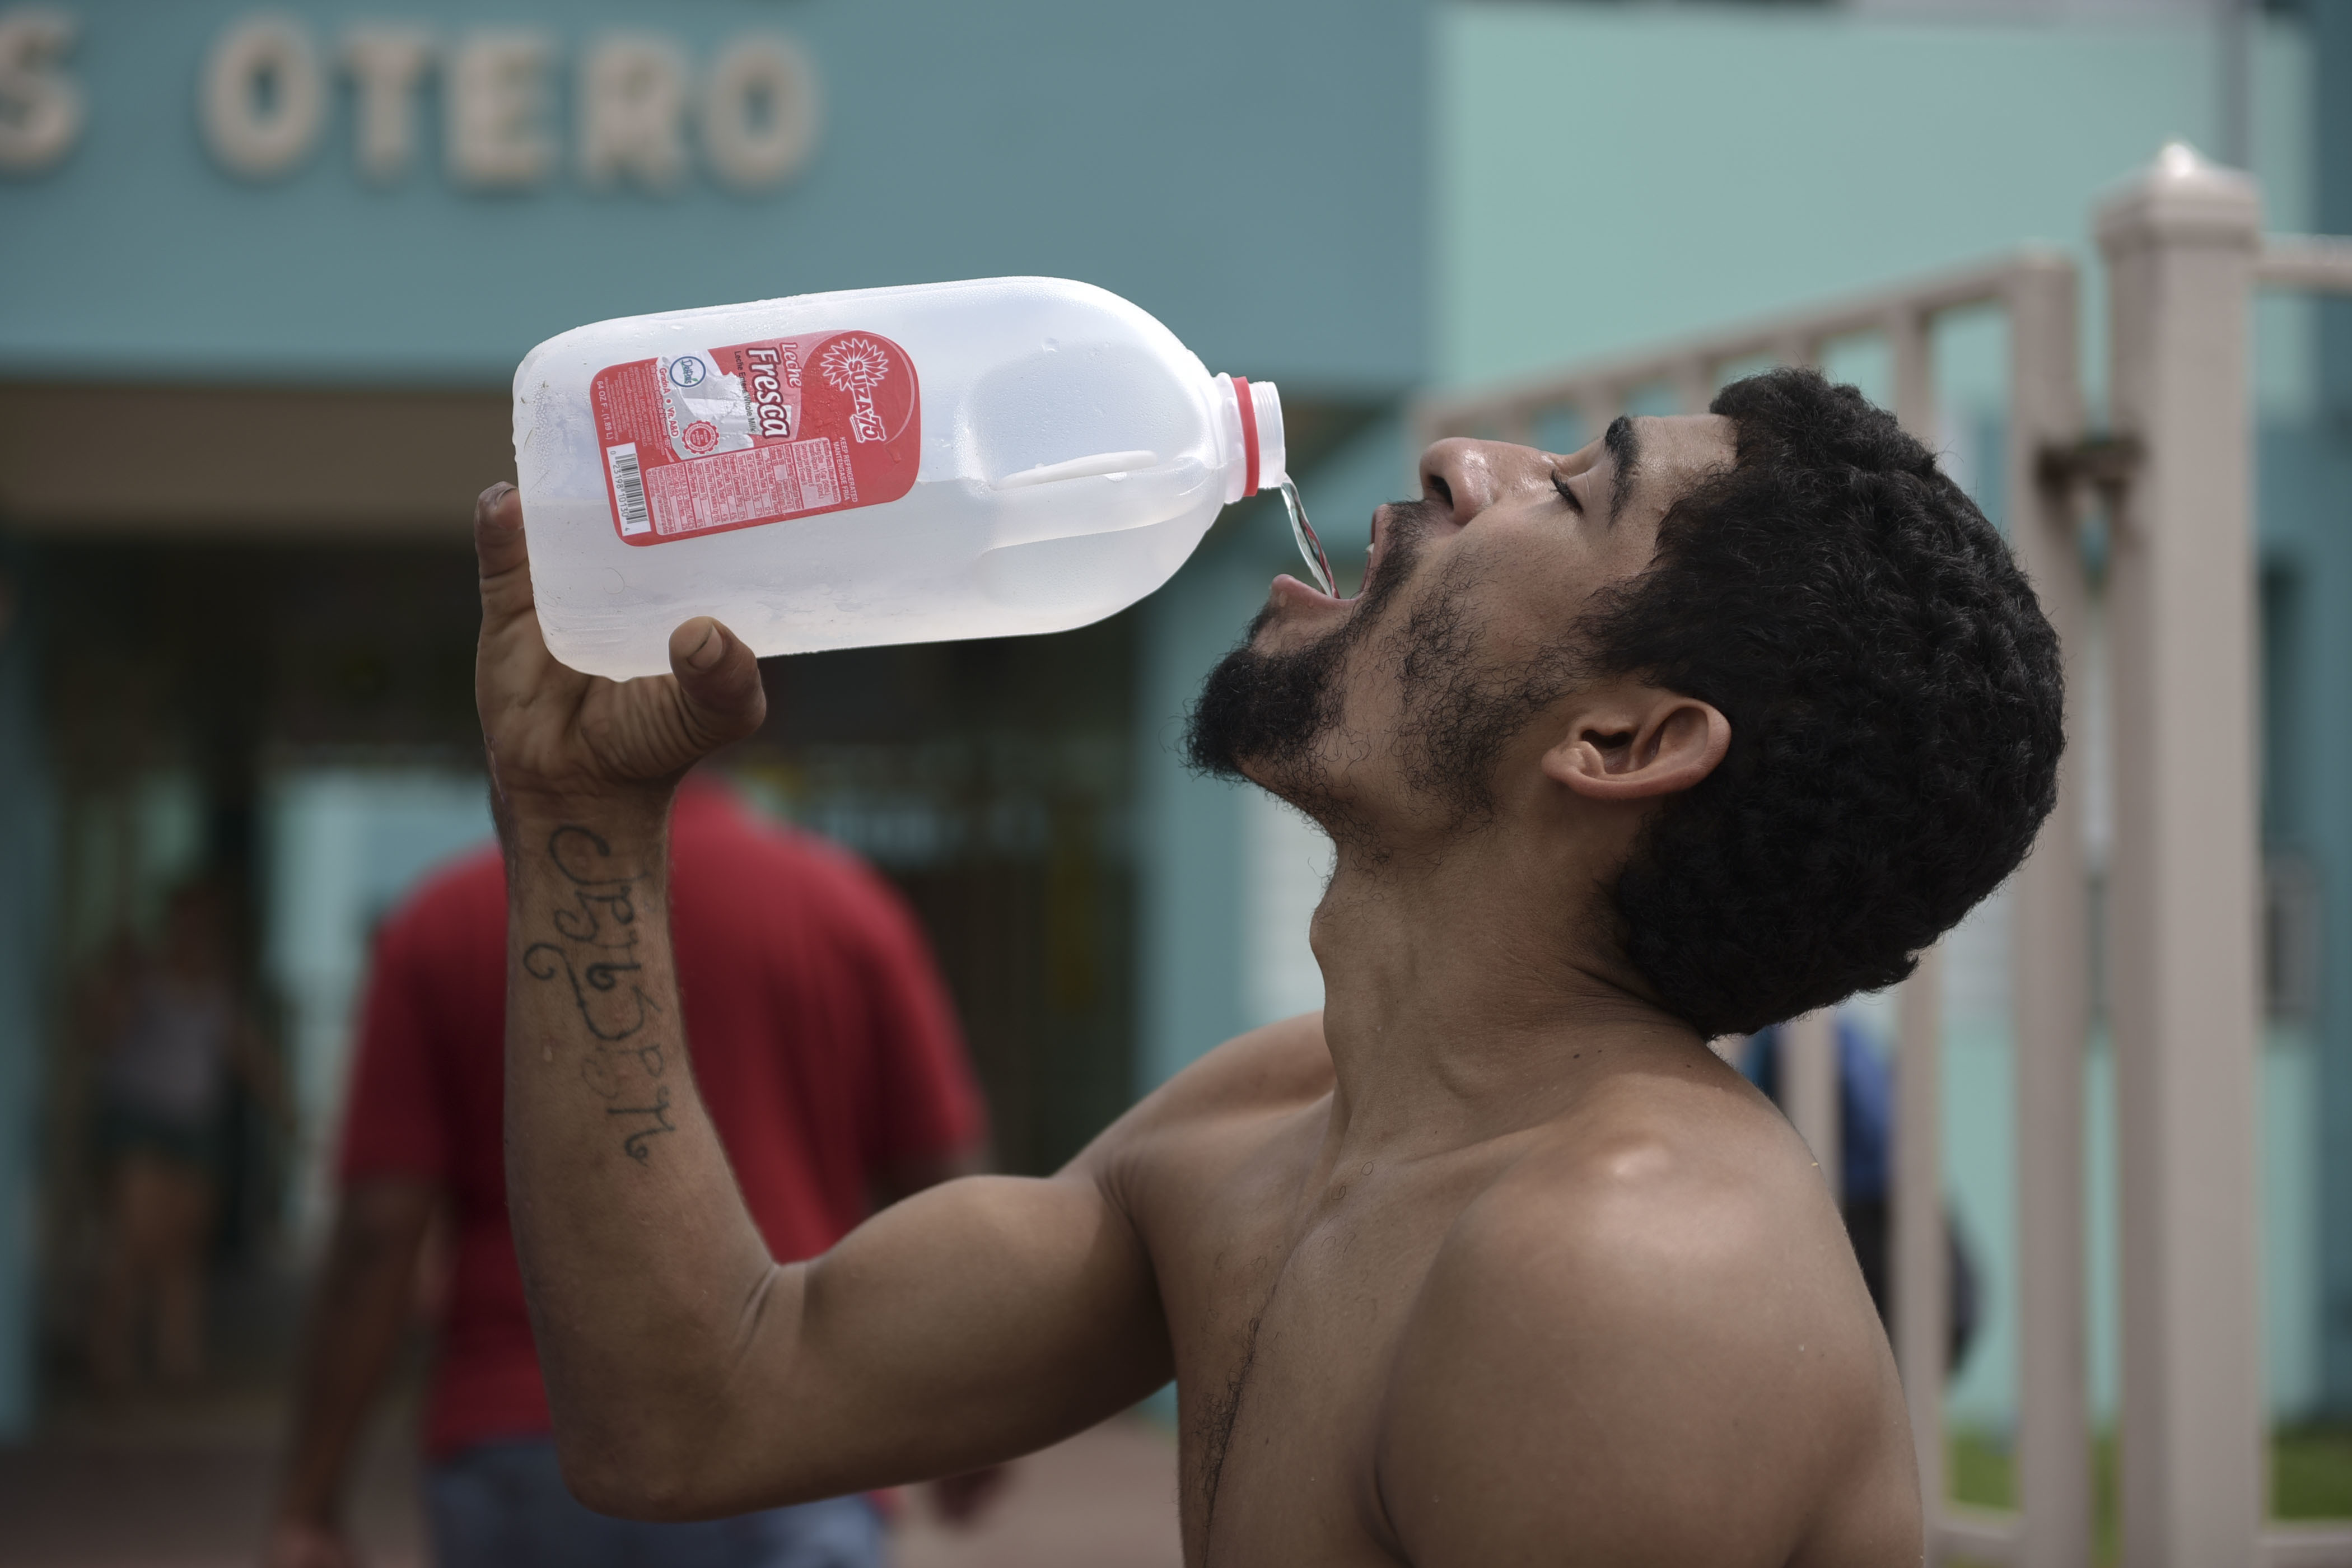 Julio Ortiz Montanez drinks water at the Jose Robles Otero Elementary School after the passing of Hurricane Maria, in Toa Baja, Puerto Rico, Friday, September 22, 2017. Because of the heavy rains brought by Maria, thousands of people were evacuated from Toa Baja after the municipal government opened the gates of the Rio La Plata Dam. (AP Photo/Carlos Giusti)